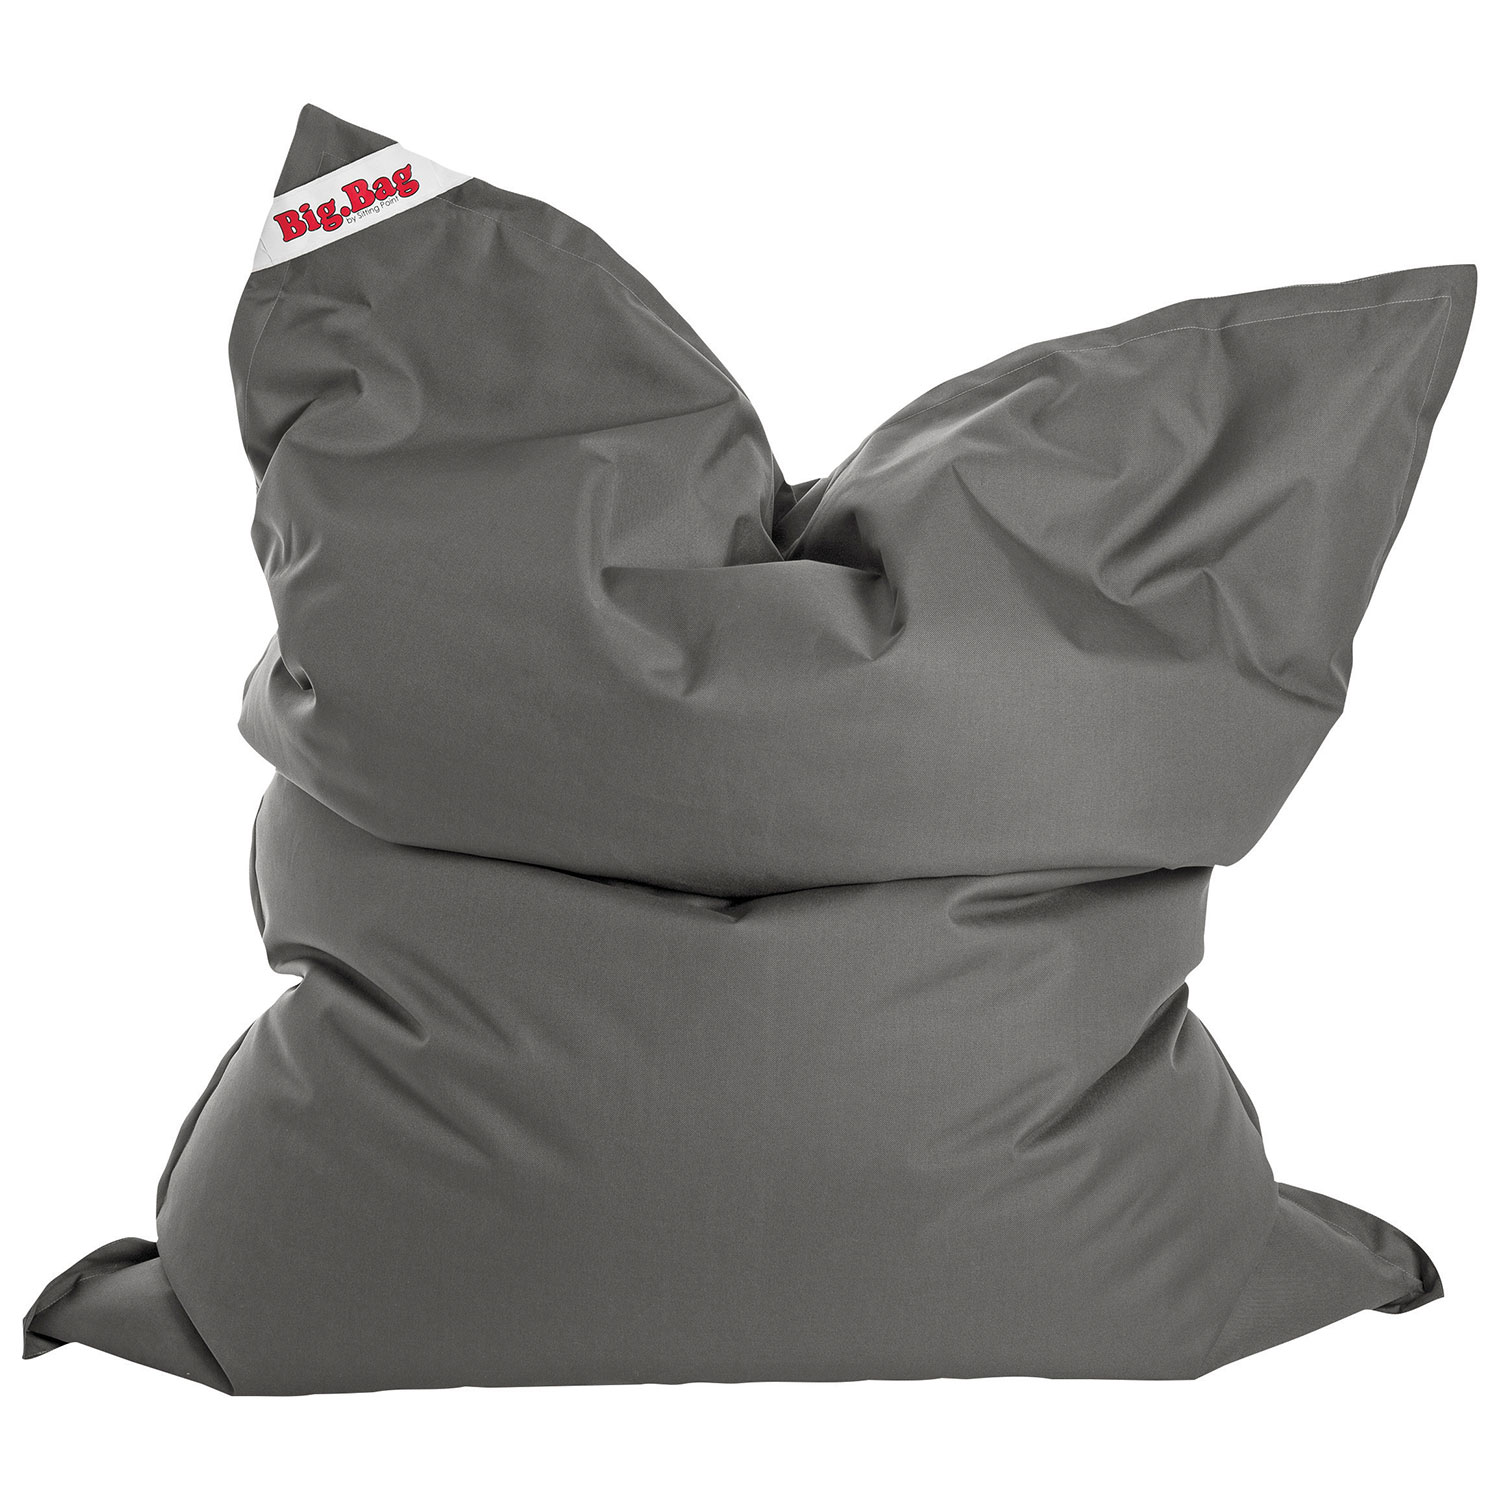 Sitting Point Brava Contemporary Bean Bag Chair - Grey : Kids & Teens  Chairs - Best Buy Canada